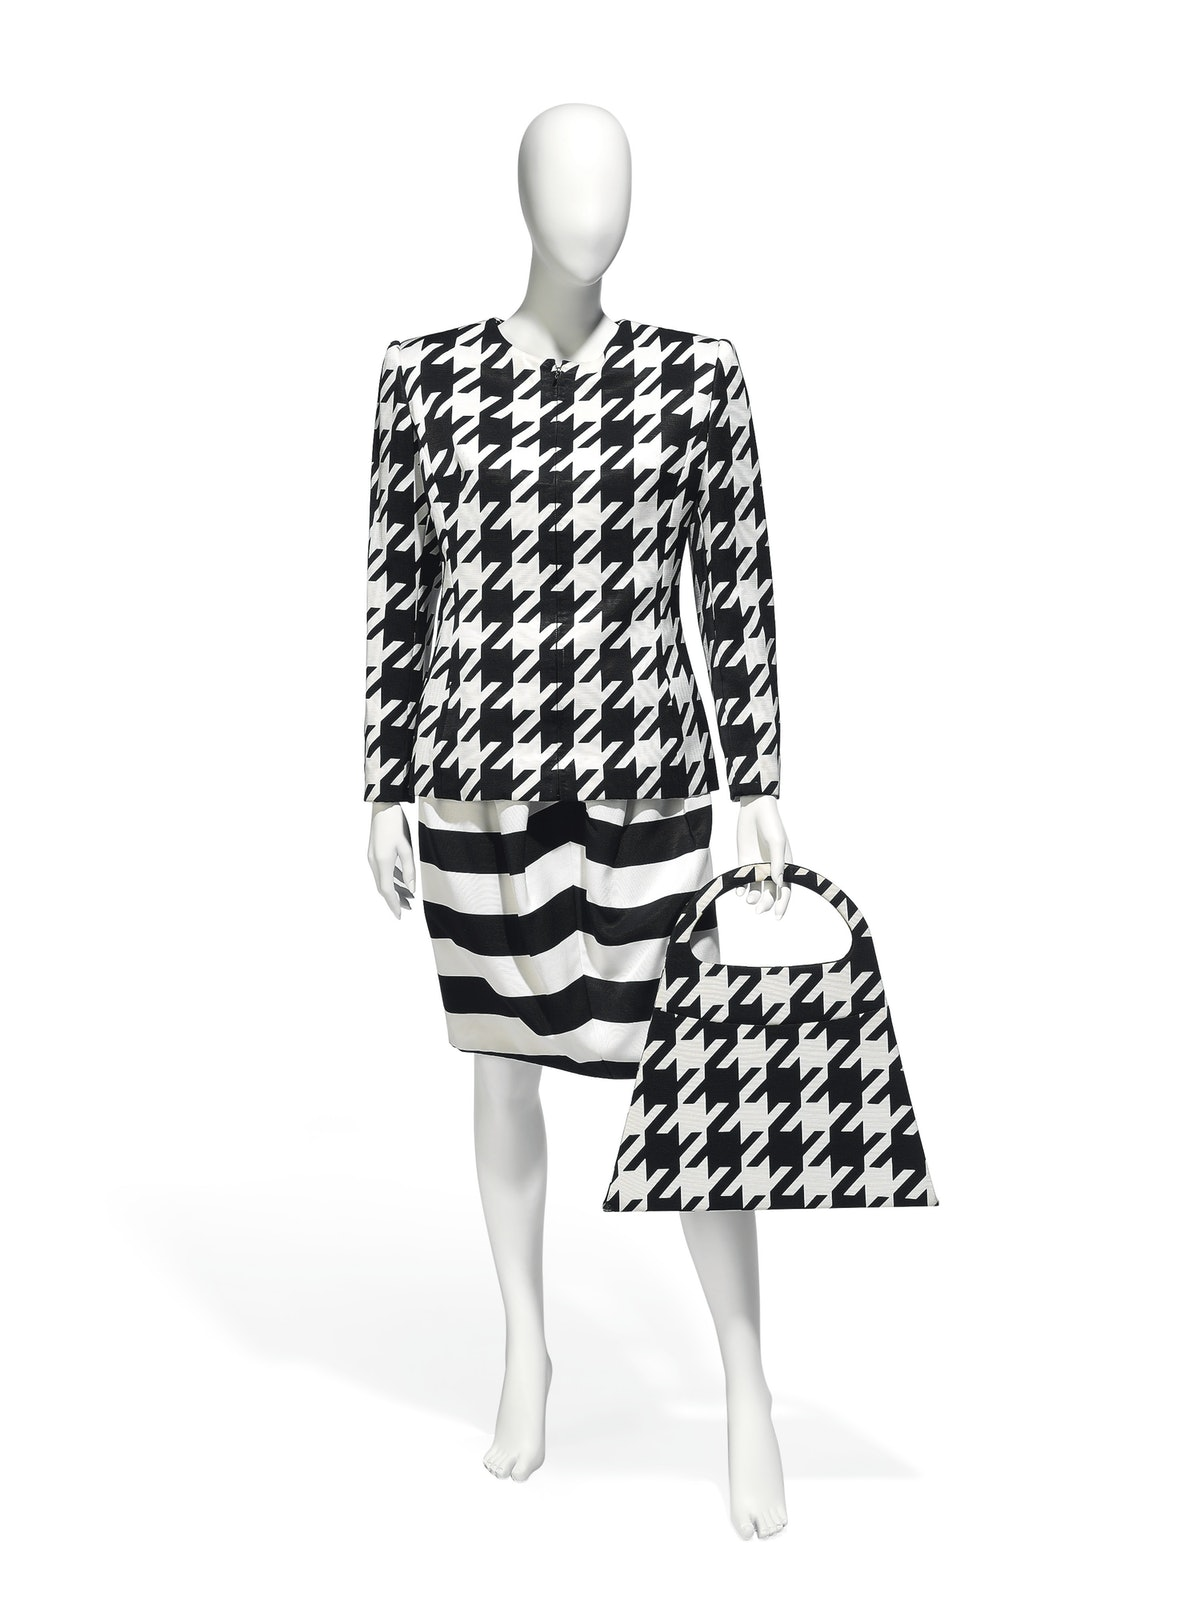 Christian Lacroix printed silk ensemble with matching over-sized handbag, 1980s